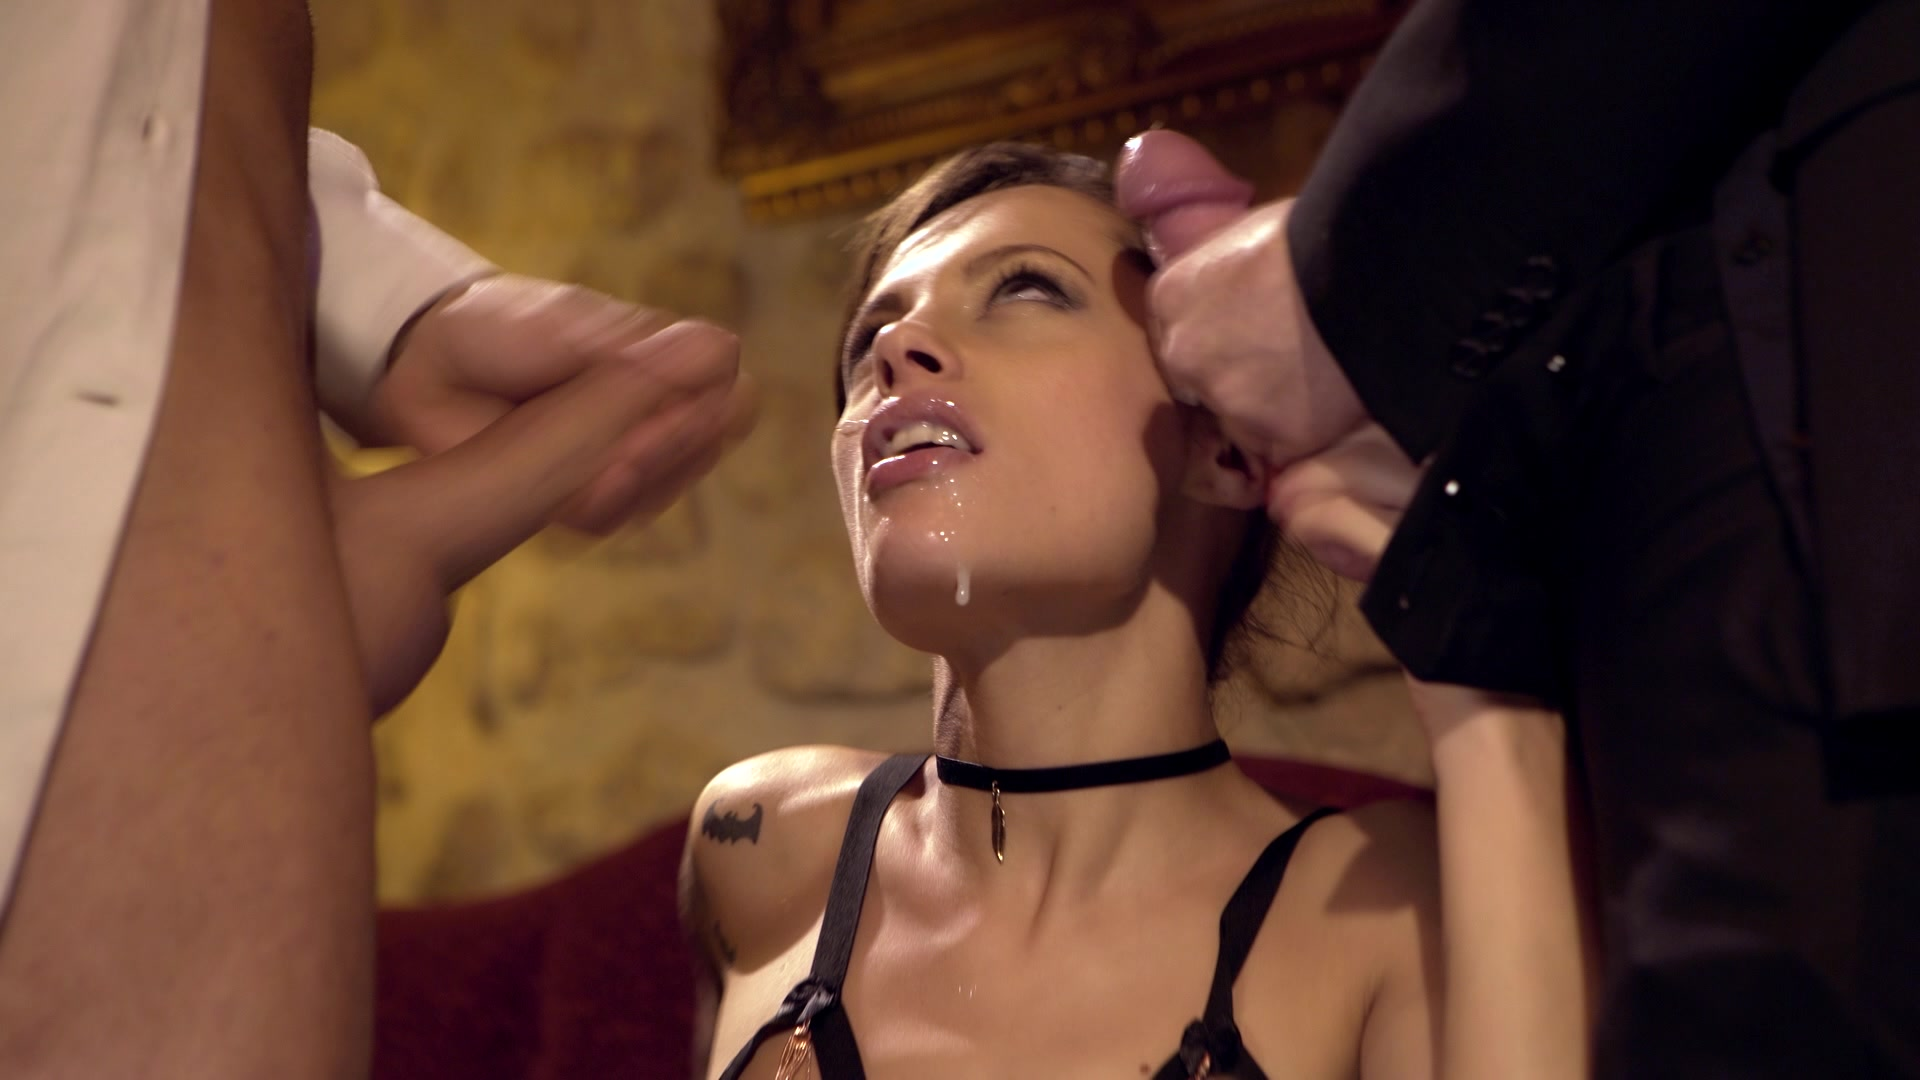 Scene with Nikita Belluci - image 19 out of 20